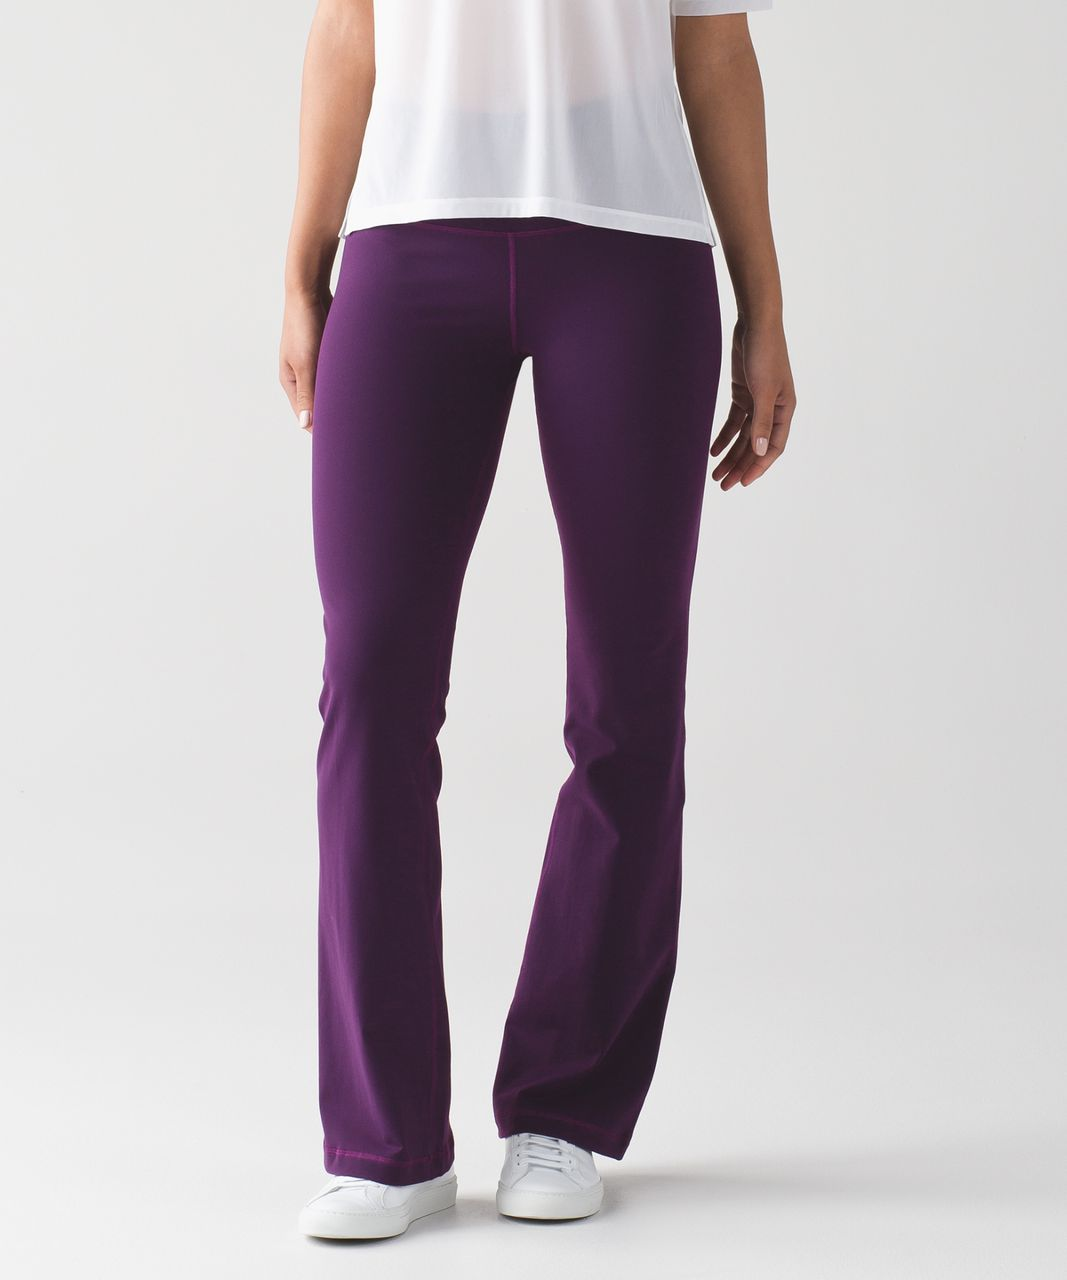 Lululemon Groove Pant III (Regular) - Darkest Magenta